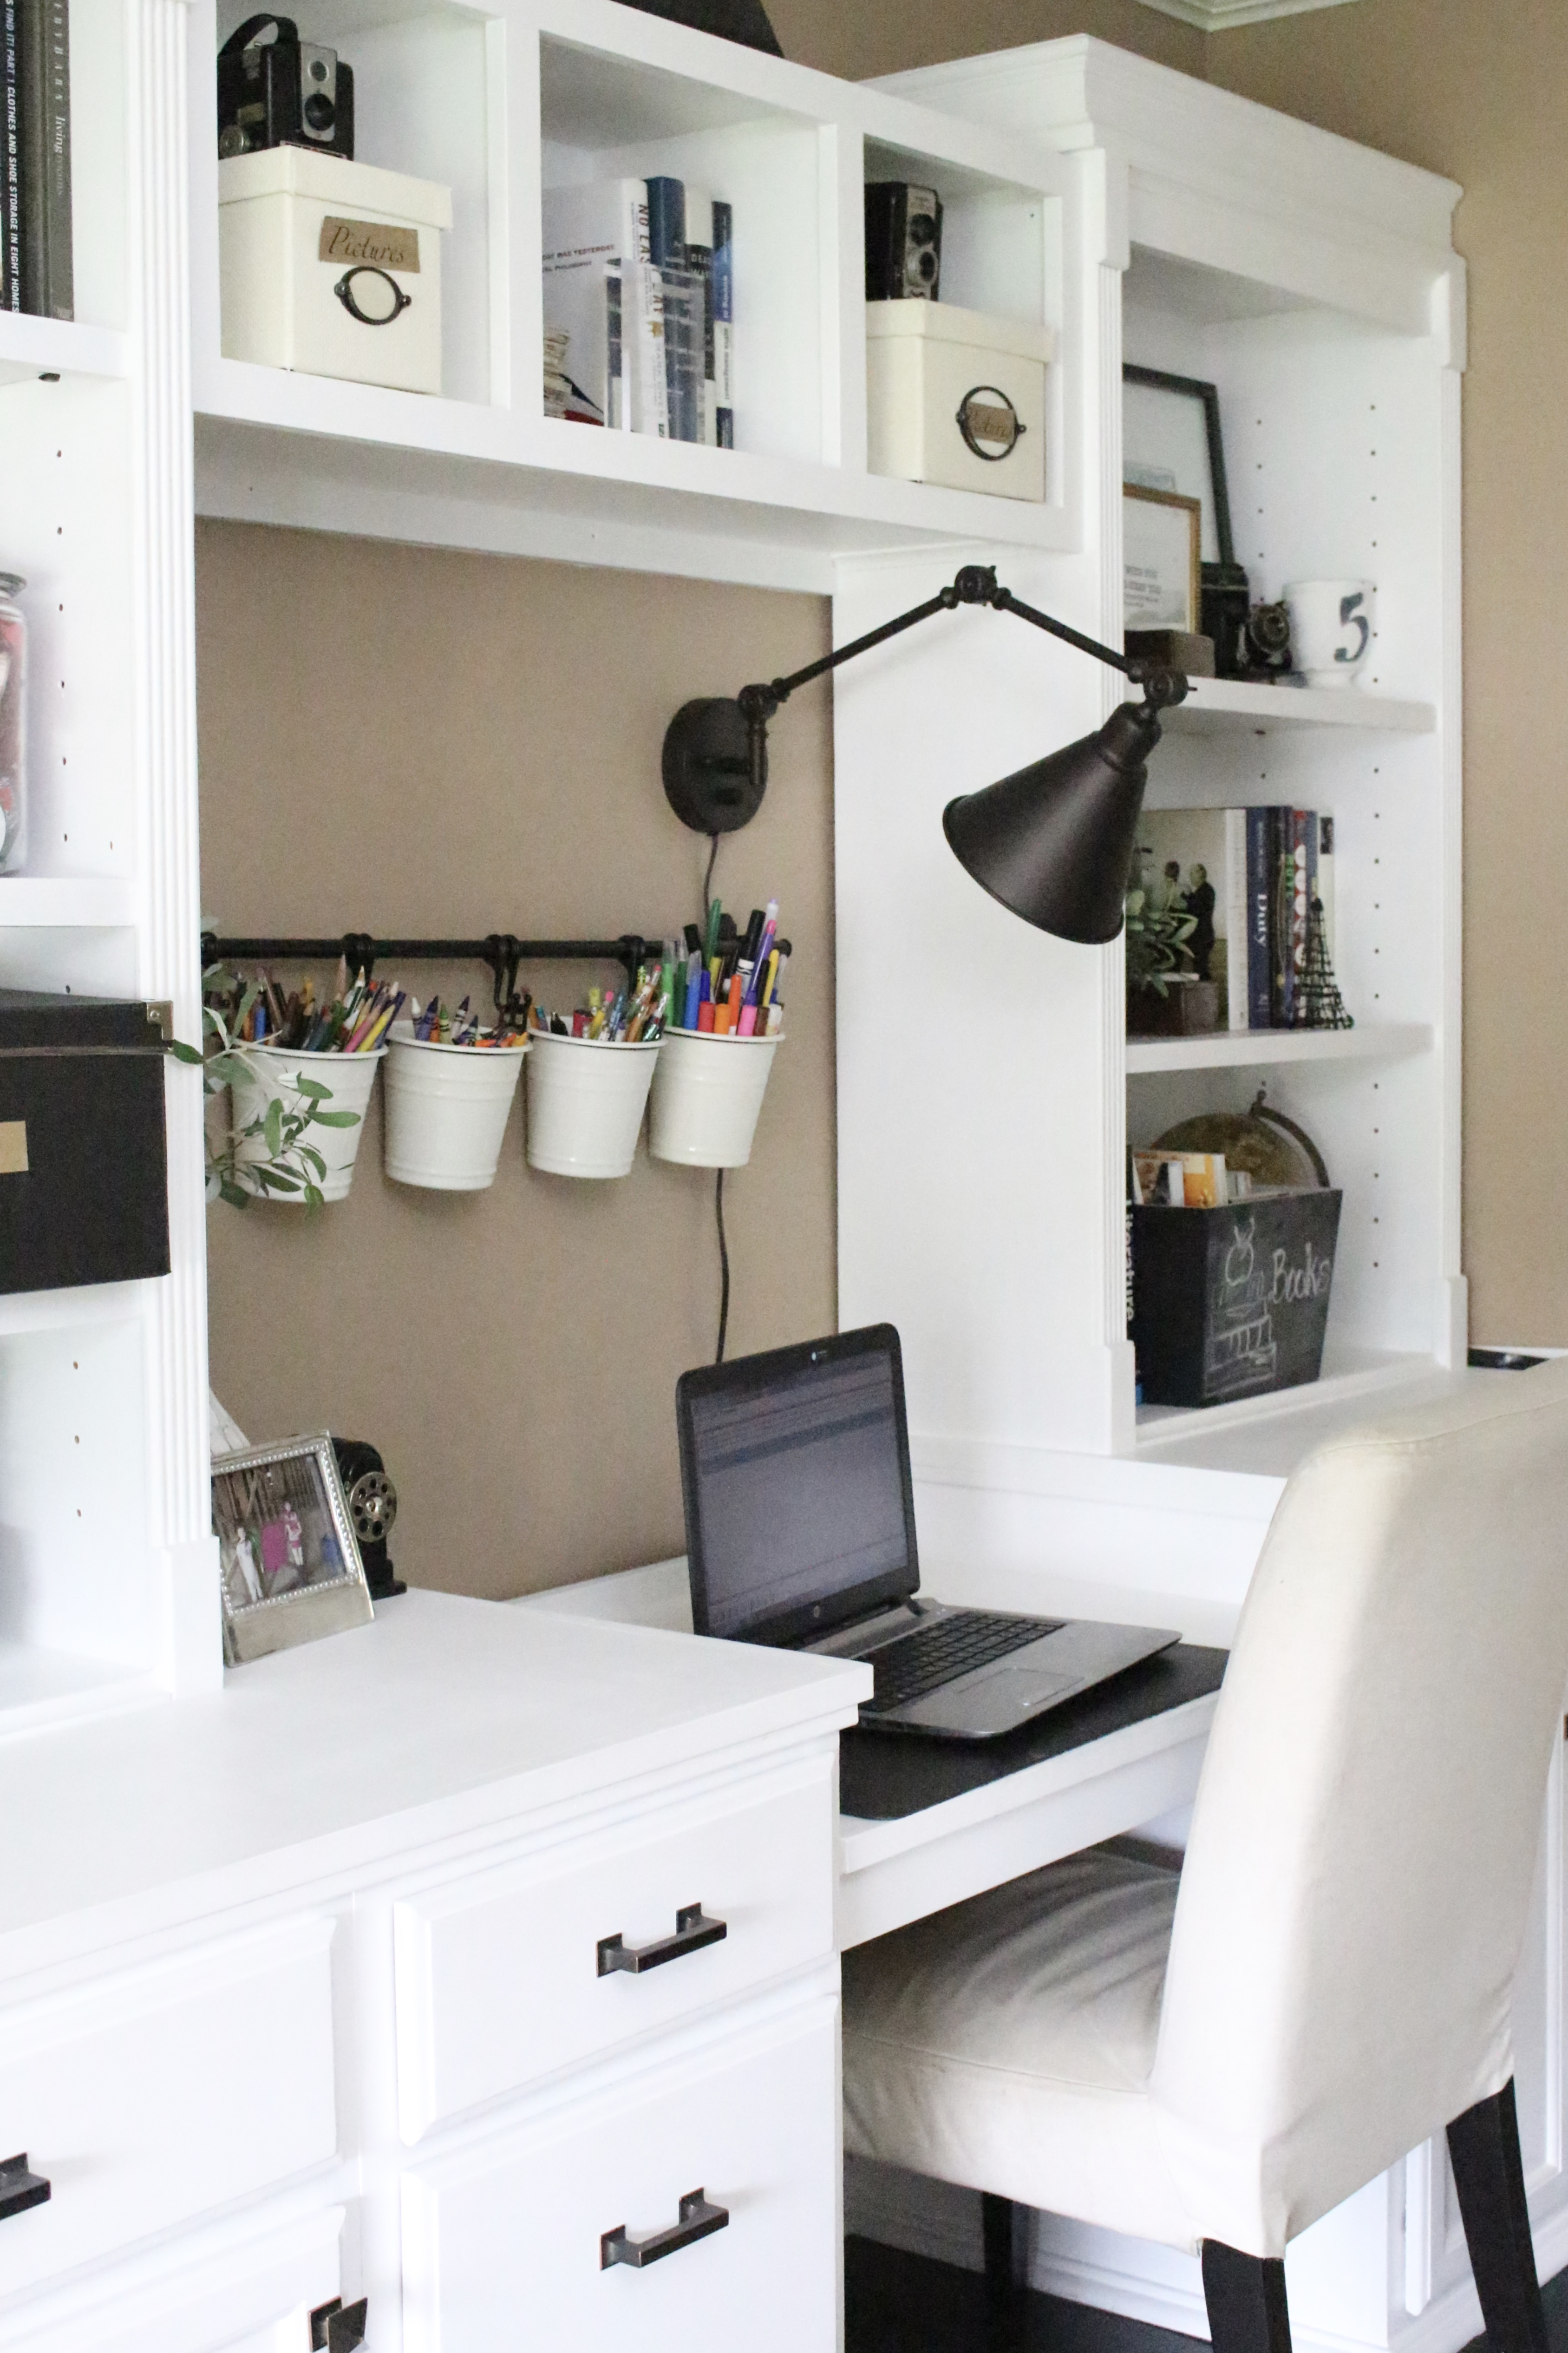 Home office ideas- craft room- reveal- home office space- craft supply storage ideas- One Room Challenge- renovation- home tour- office makeover- One Room Challenge Reveal Week 6- farmhouse style office- neutral decor- built in shelving- styling shelves